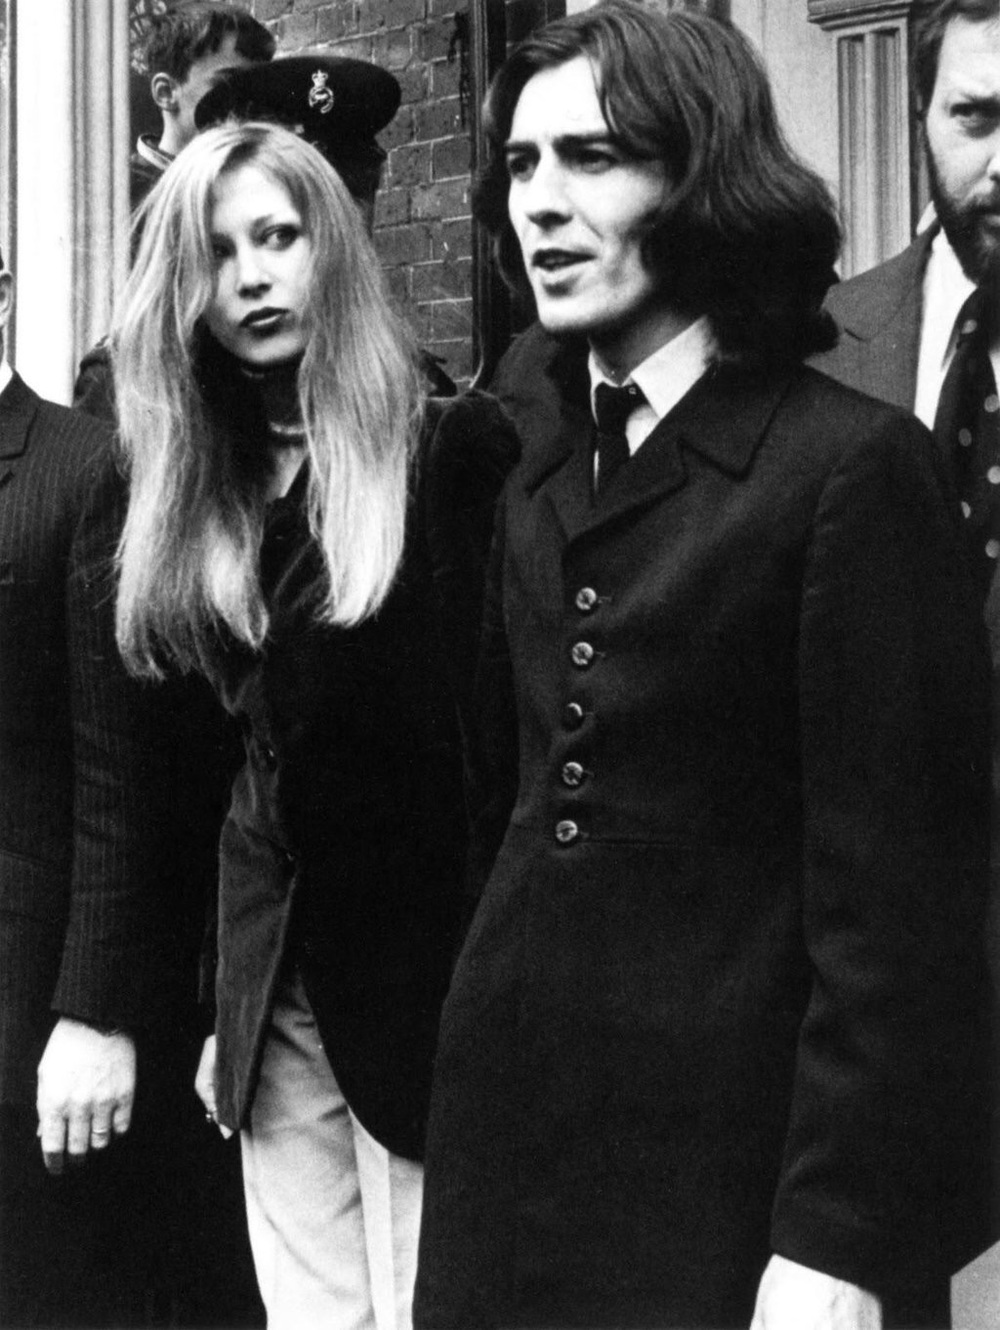 George Harrison and Pattie Boyd, 1969.